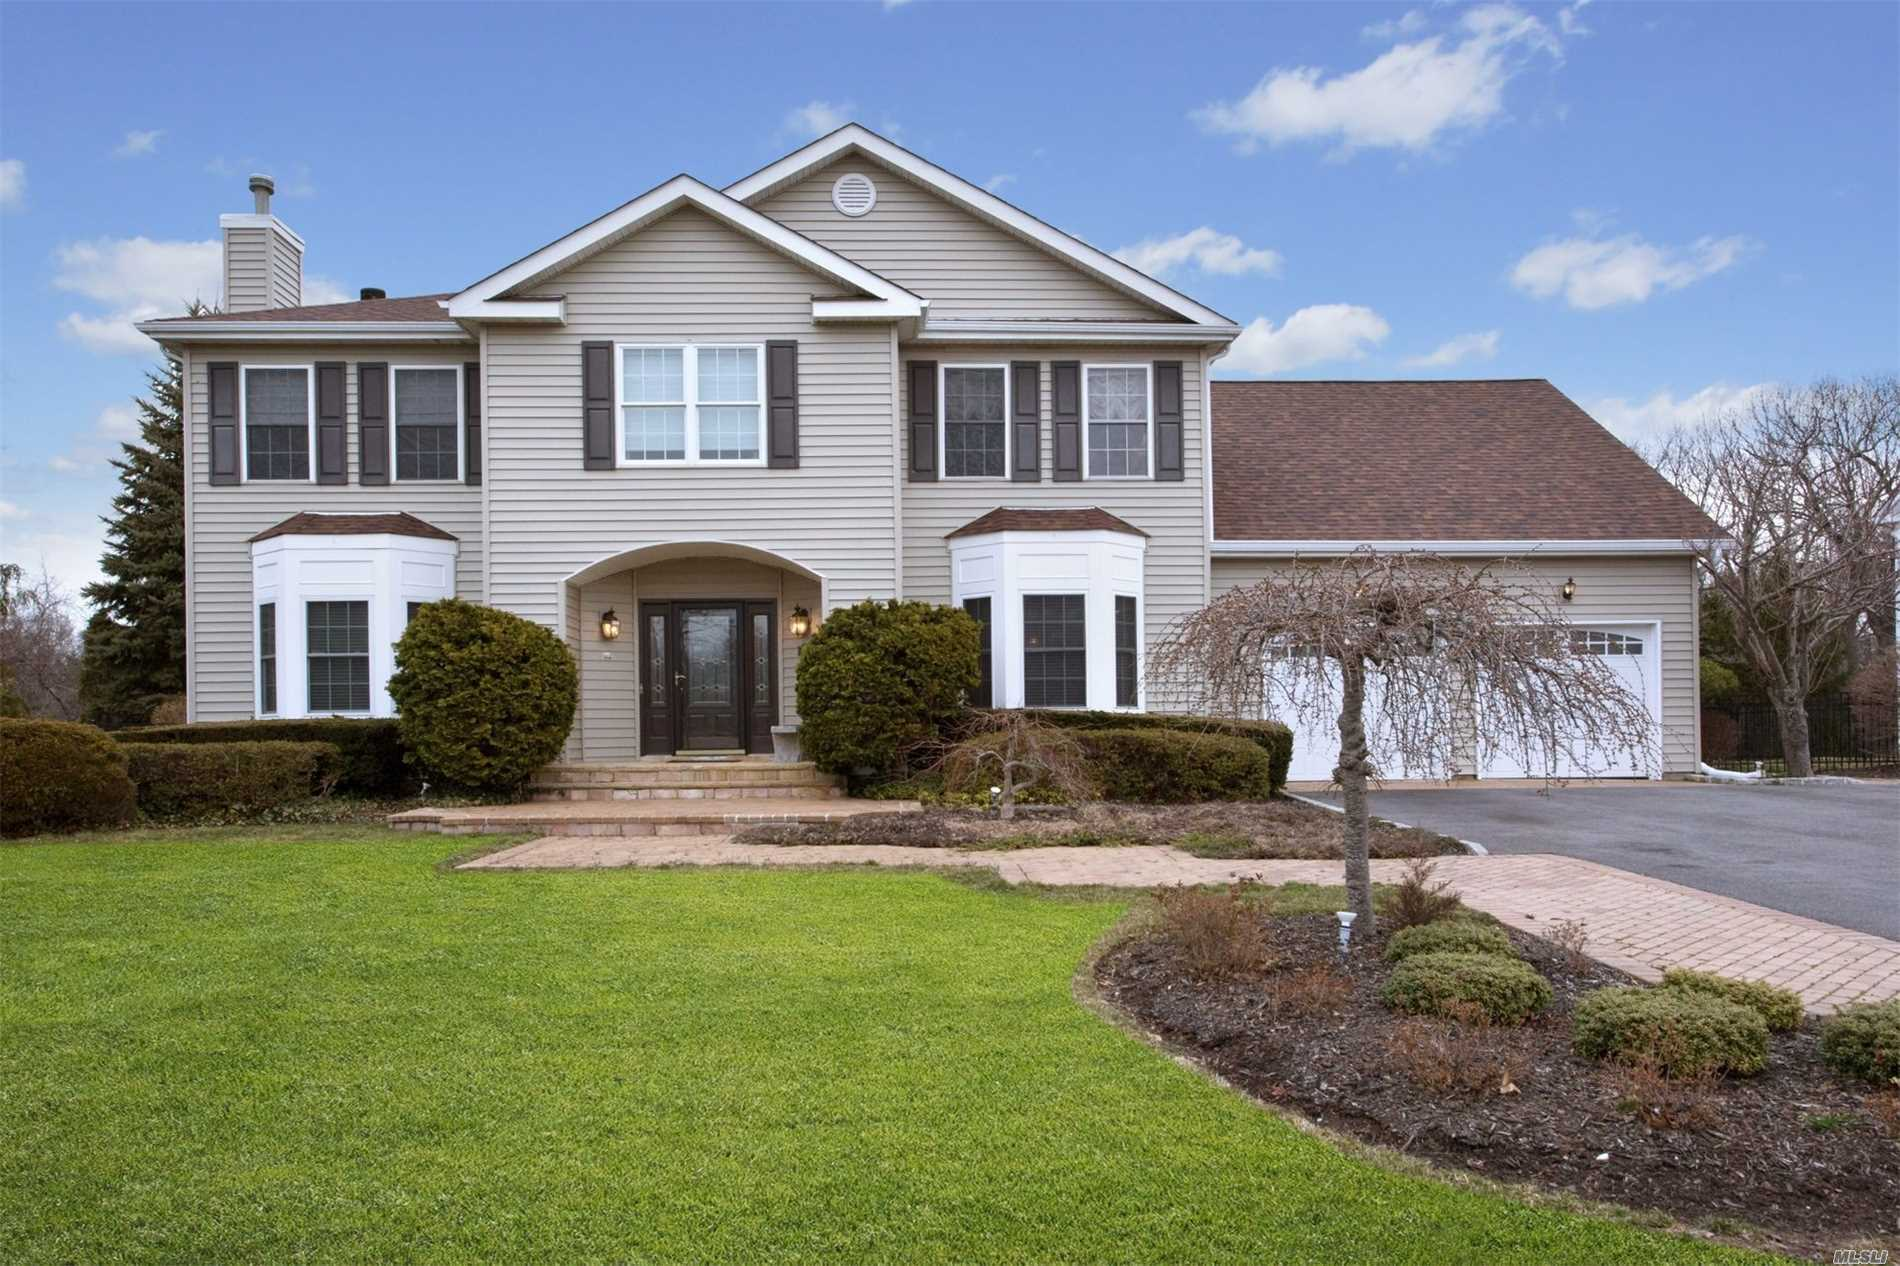 Desirable Birmingham Estates Cul De Sac ~5 Bedroom, 3.5 Bath Center Hall Colonial On A Private Half Acre. Ground Level ~ Summer Kitchen, Au Pair Quarters With Full Bath, Den, Office, Laundry, And Sliders To Patio. 1st Fl.~10' Ceilings, Entry Foyer, Formal Dining Room, Gourmet Eat In Kitchen With Butlers Pantry, Powder Room, Great Room With Fireplace & Sliders To Deck. 2nd Fl ~ 3 Large Bedrooms, Full Bath, Master Suite With 3 Walk In Closets & Laundry. Heated Salt Water Pool With Overflow To Hot Tub. Central Air Conditioning, Central Vac, Whole House Generator. Entertainers Dream! Must See!